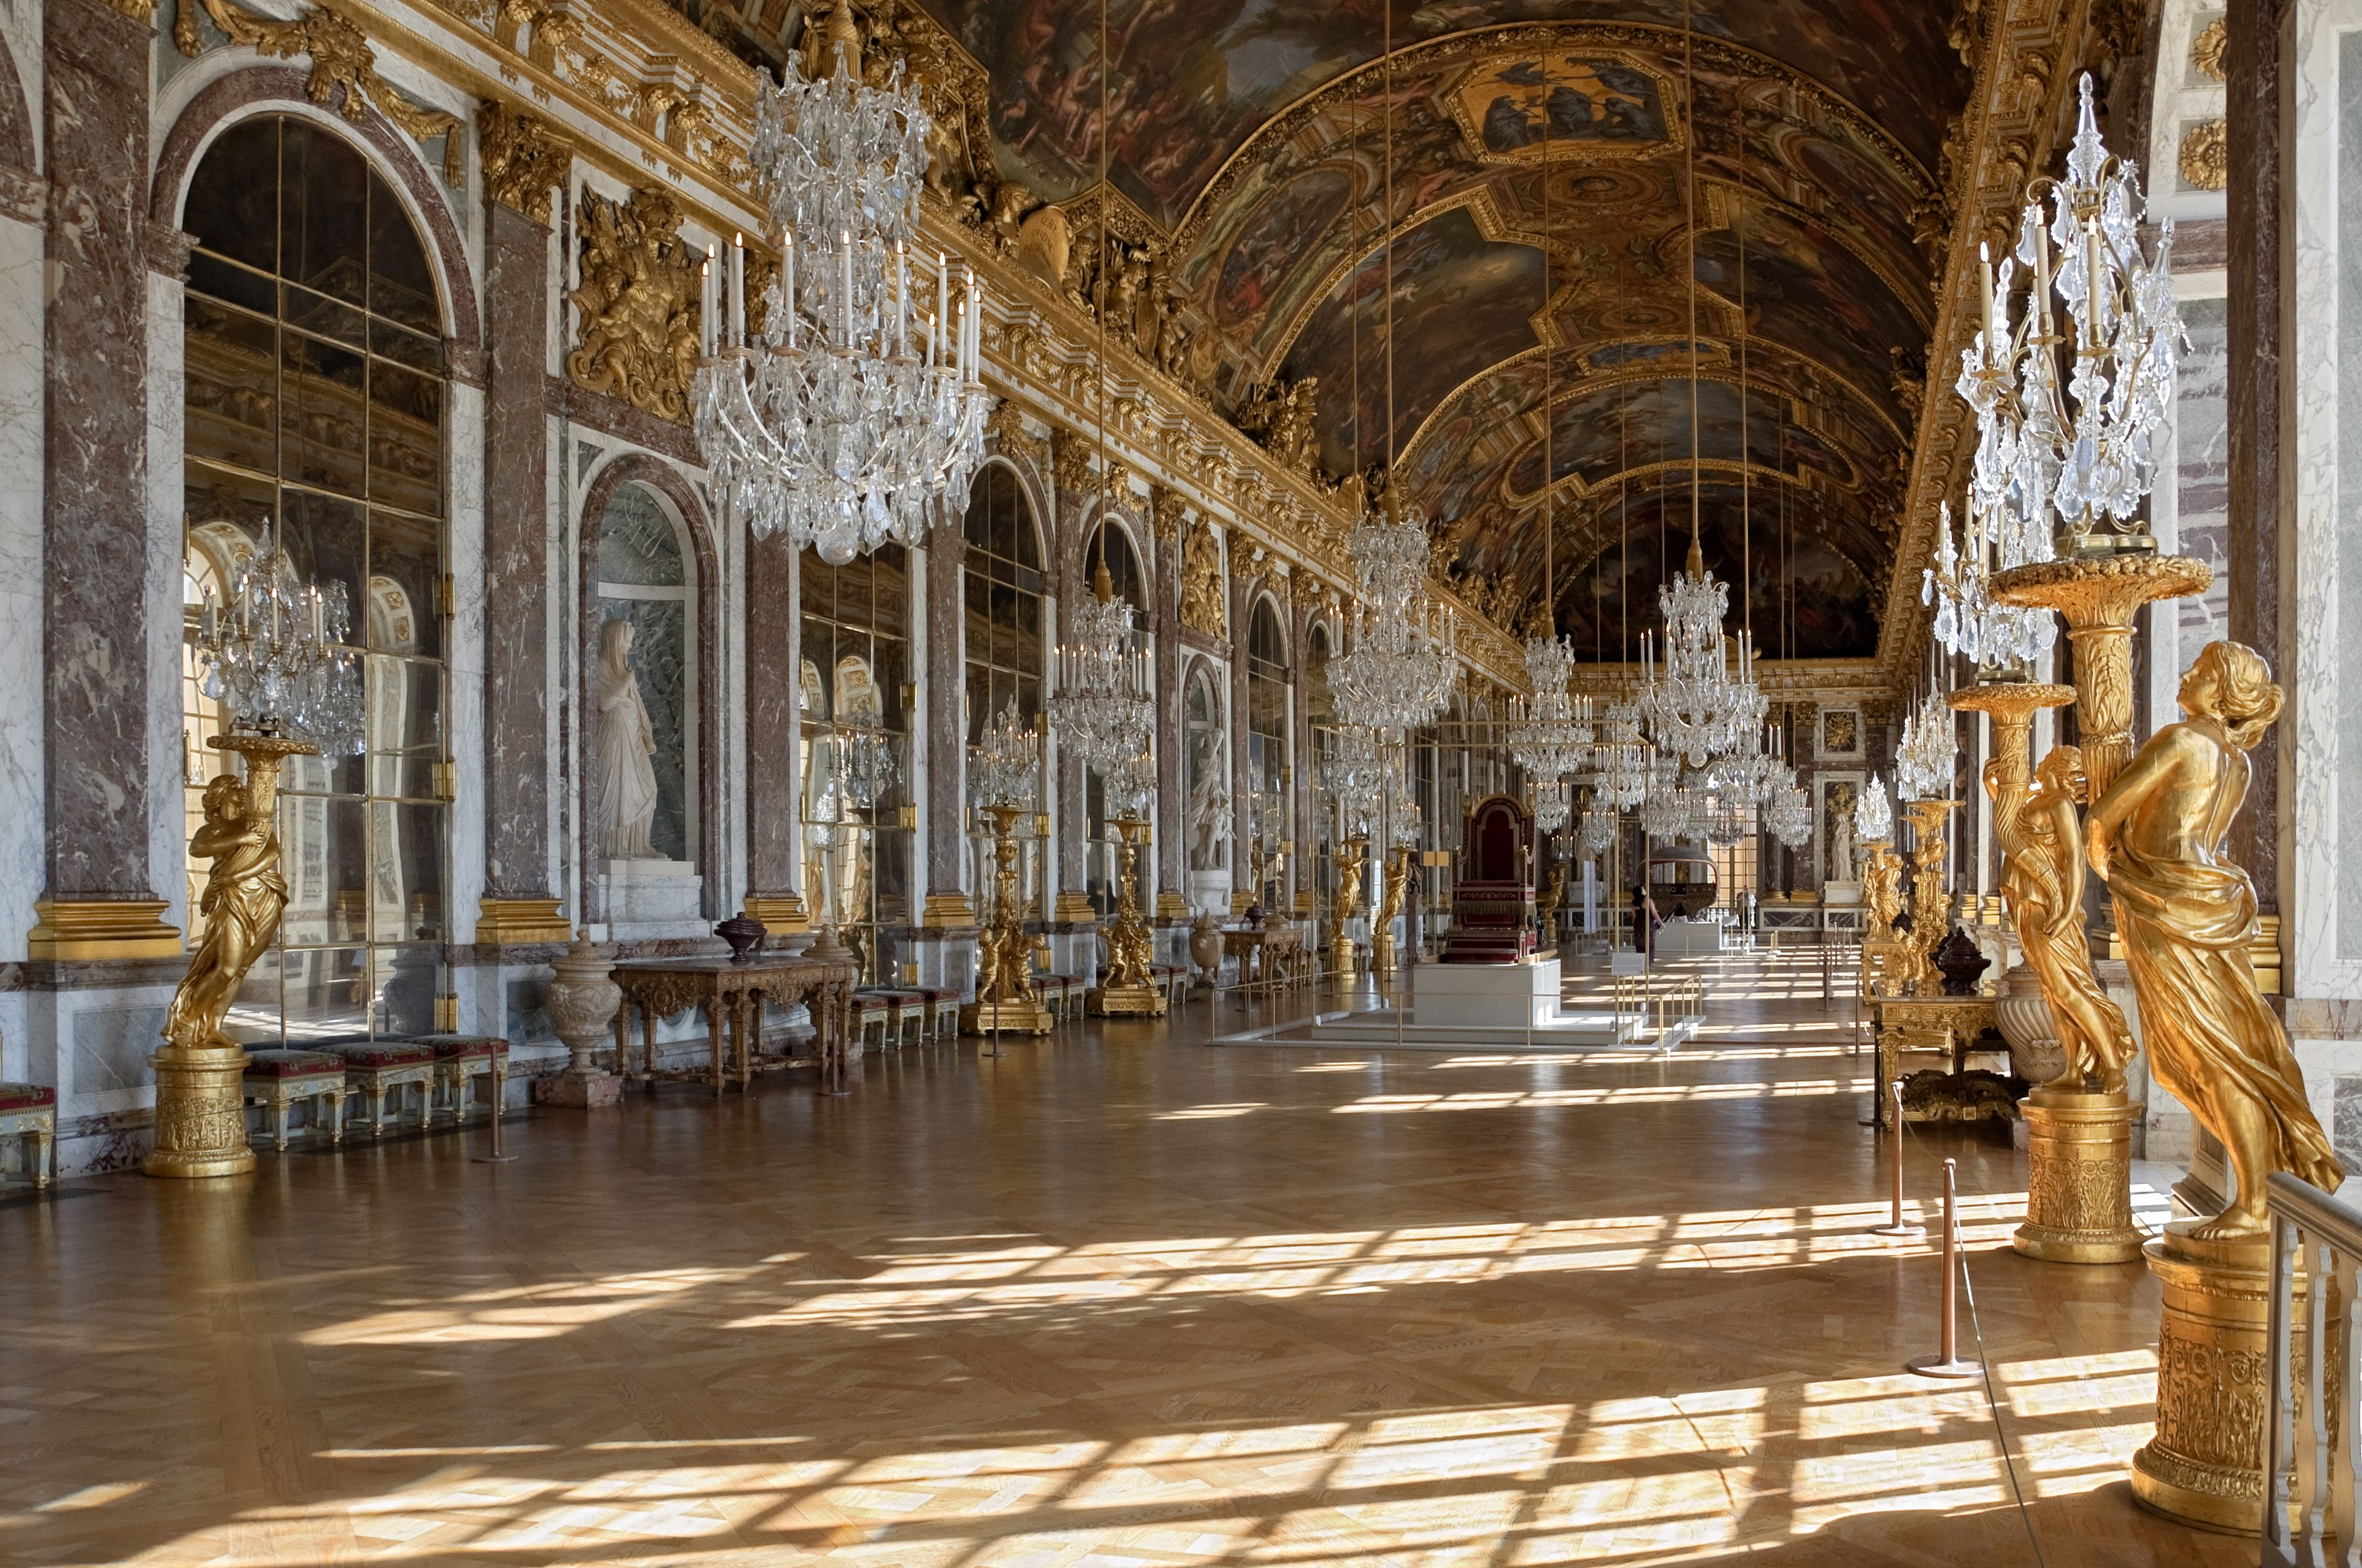 Royal design inspiration from the Palace of Versailles! #highstyle #designinspiration